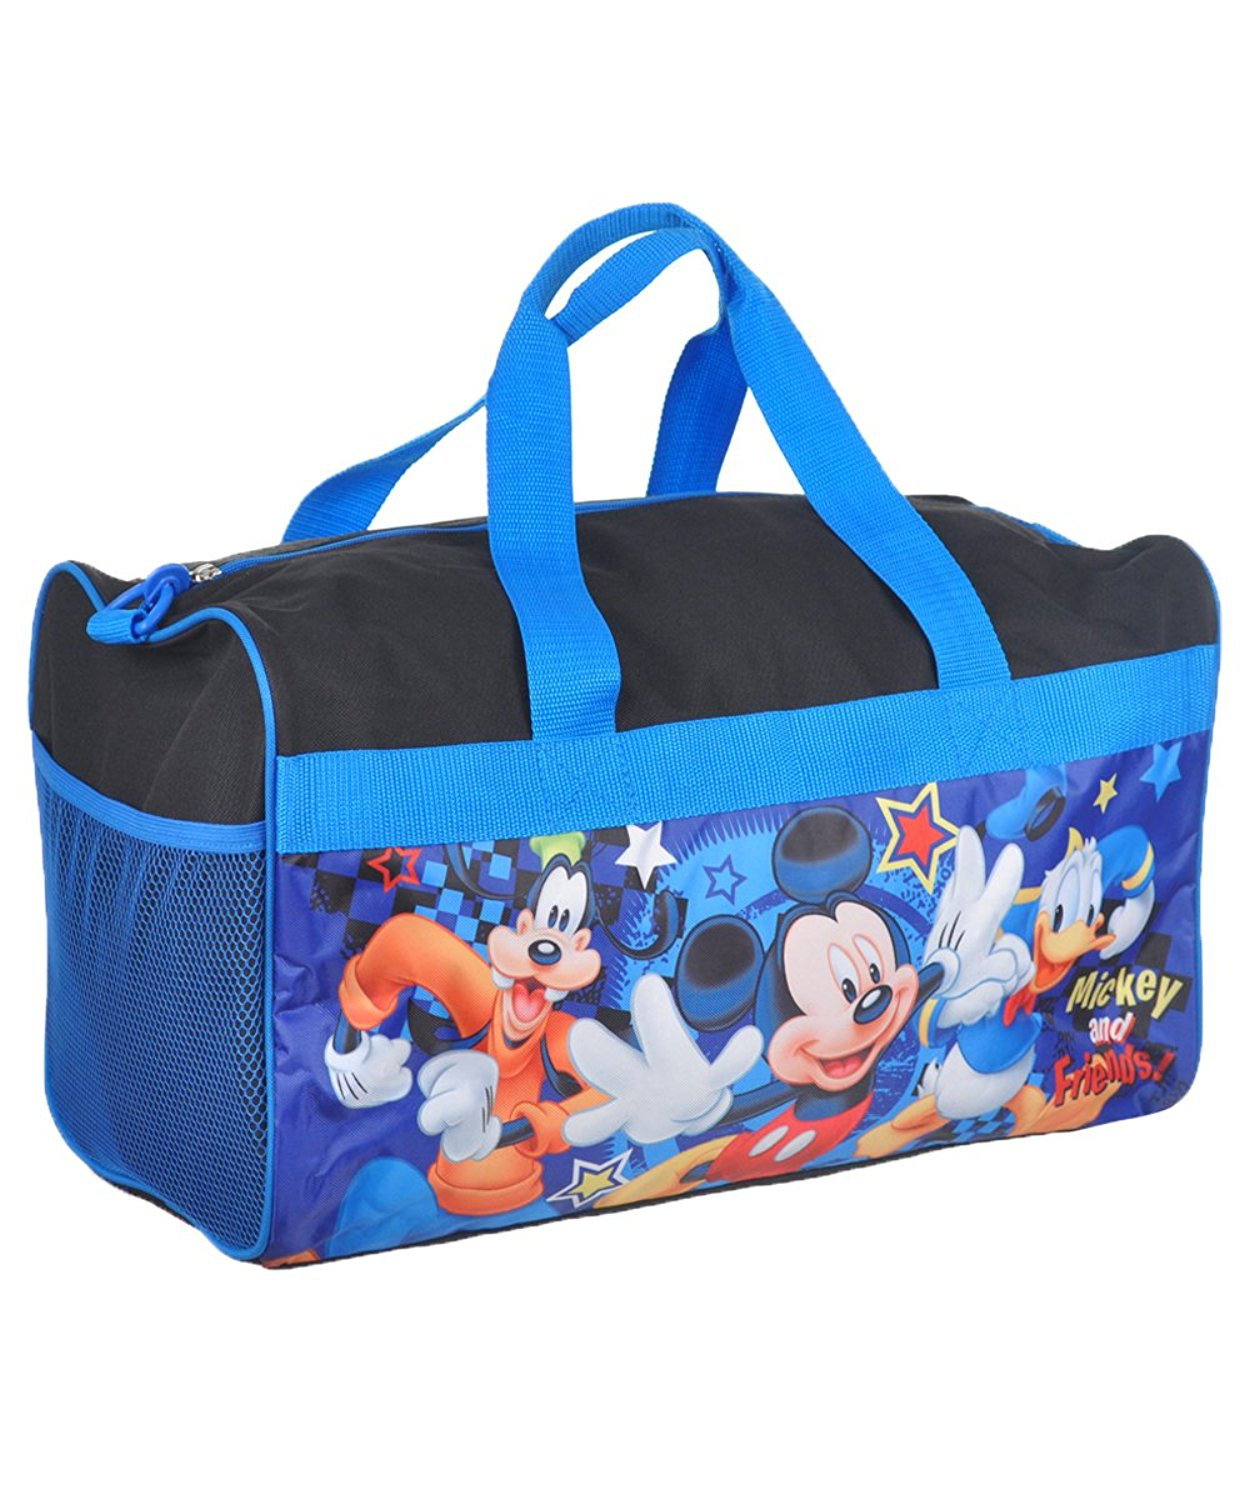 "Disney Mickey Mouse ""Mickey & Pals"" Duffle Bag by Disney"